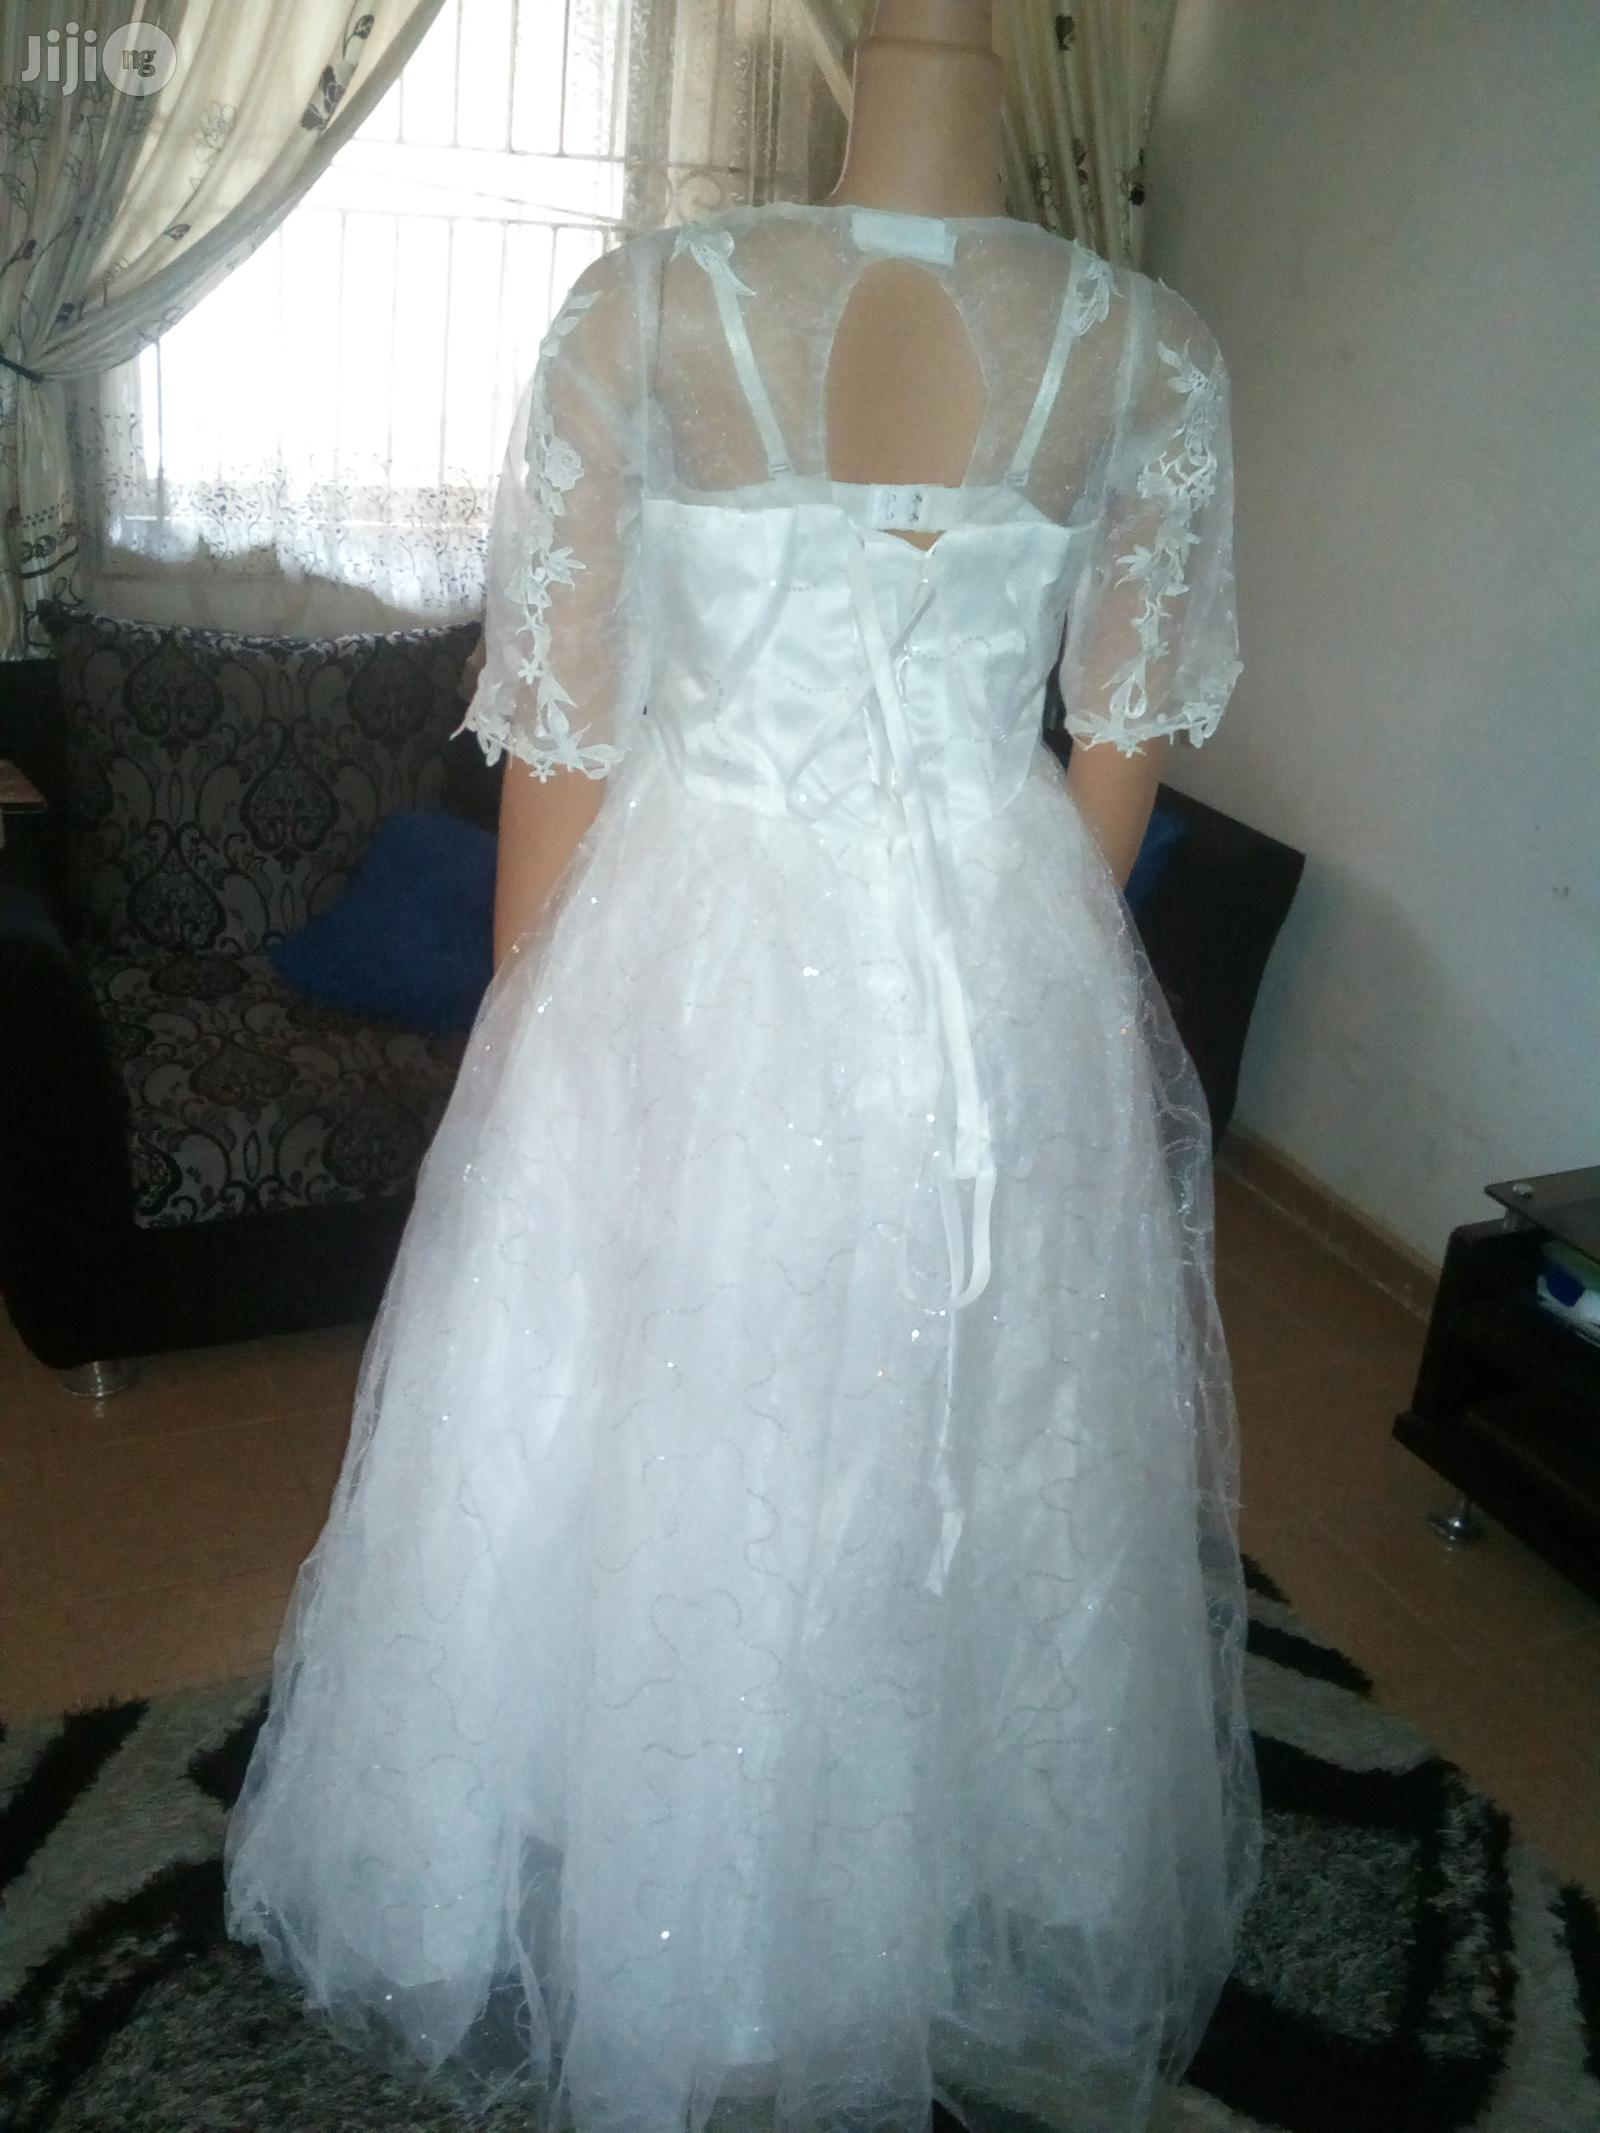 Beautiful Wedding Gown | Wedding Wear & Accessories for sale in Lagos State, Nigeria